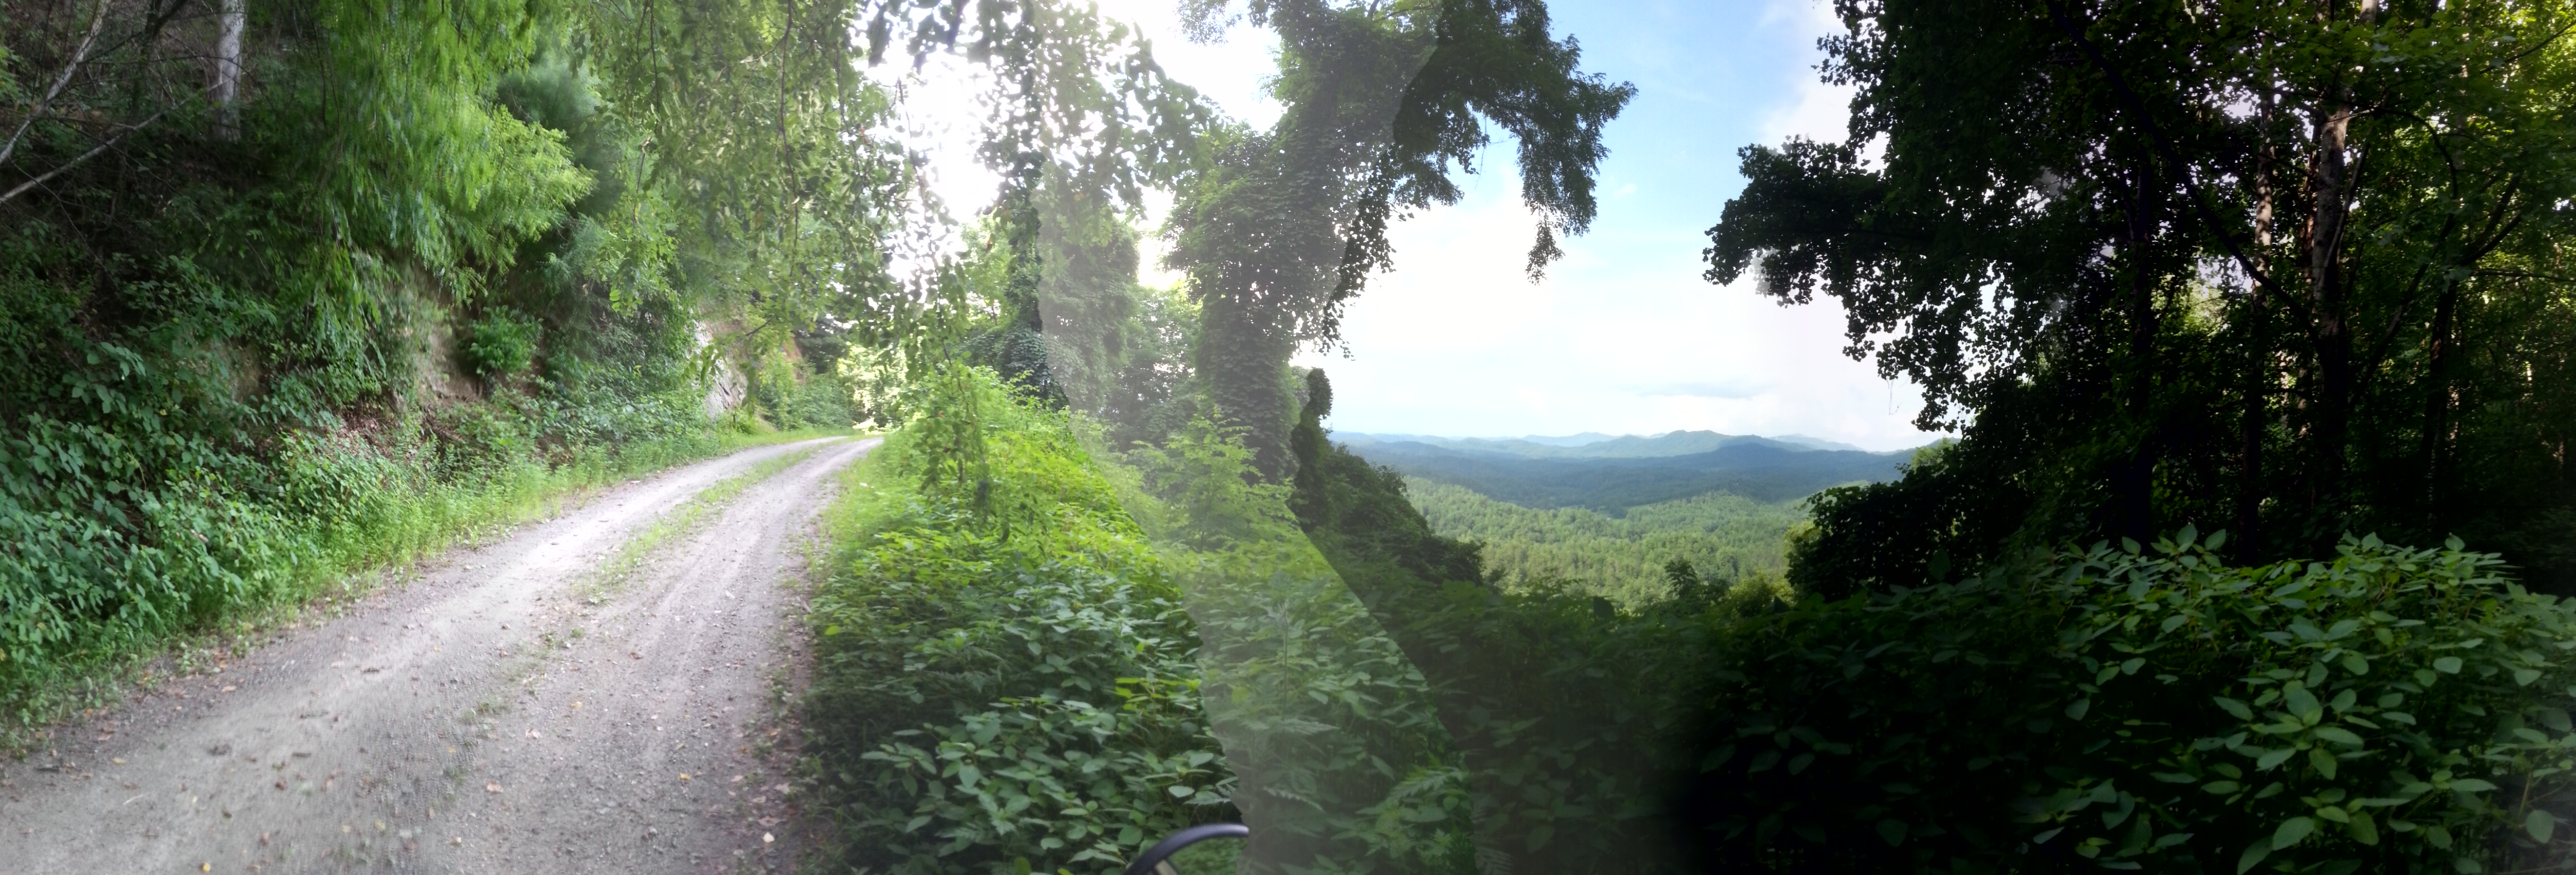 An attempt at a panoramic shot of the crazy trail I went up this afternoon, excuse the artifact in the middle